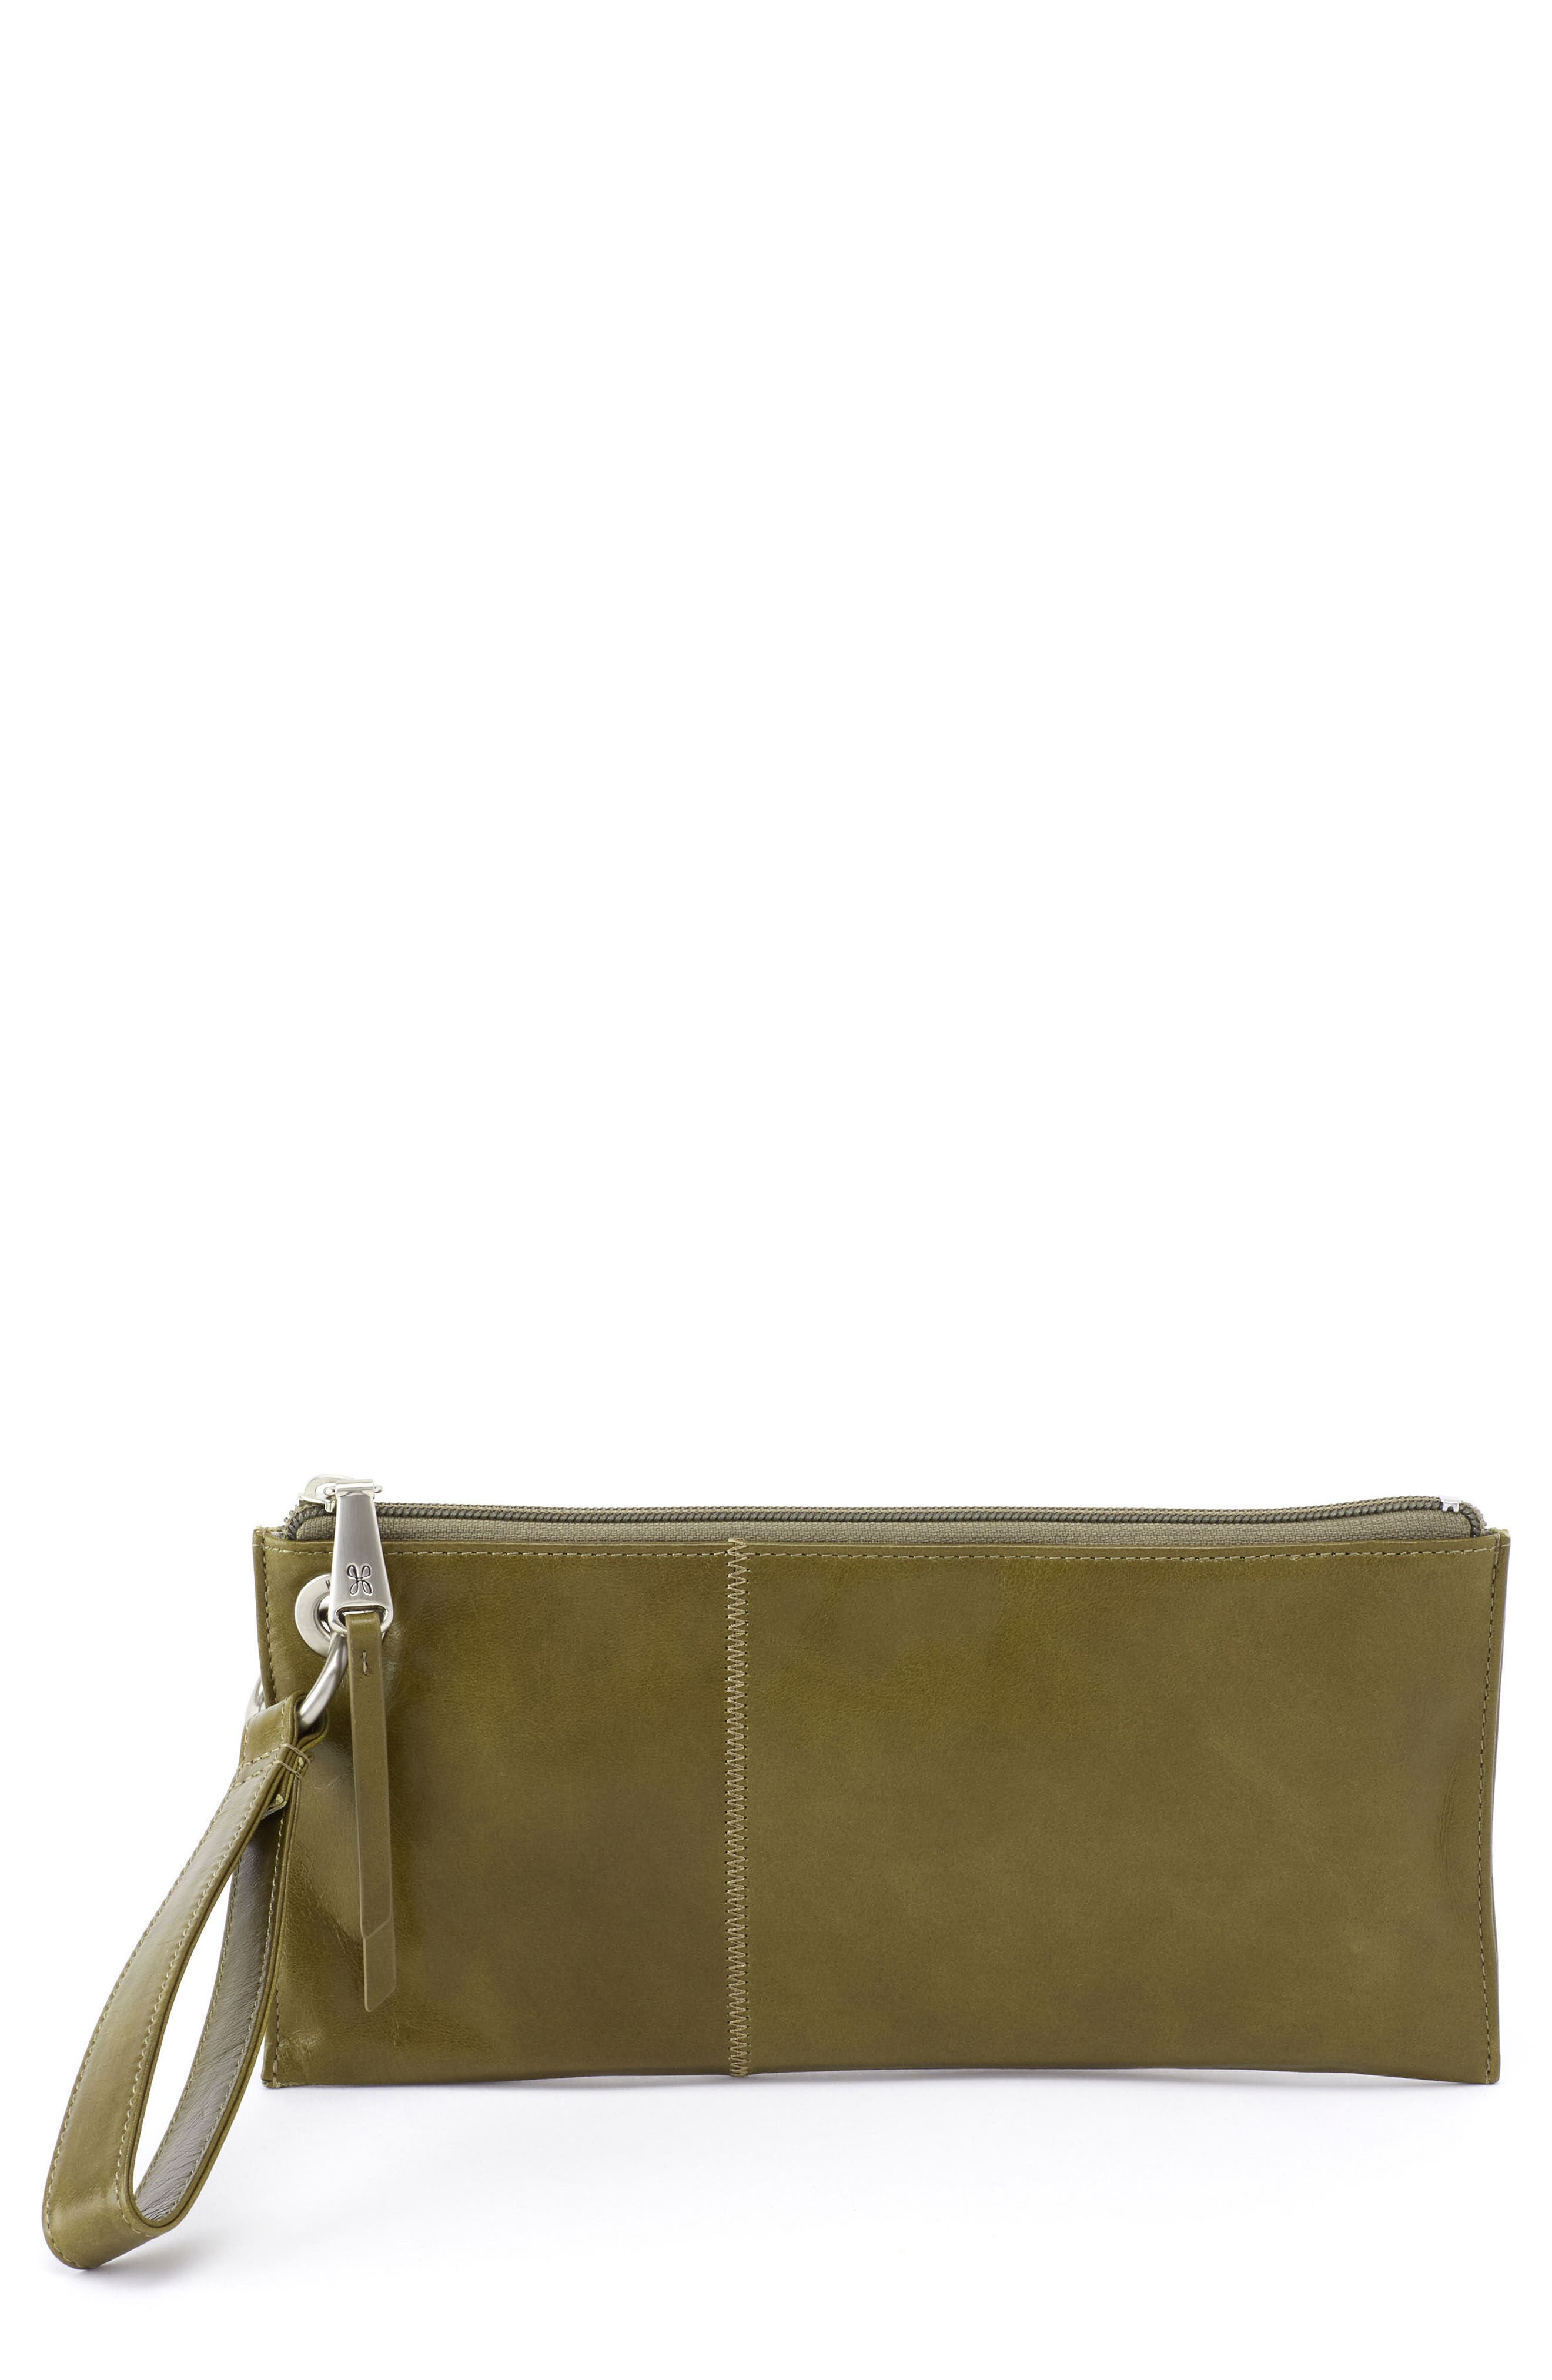 Statement Bag - Beach Girl 3 by VIDA VIDA wmmr3G